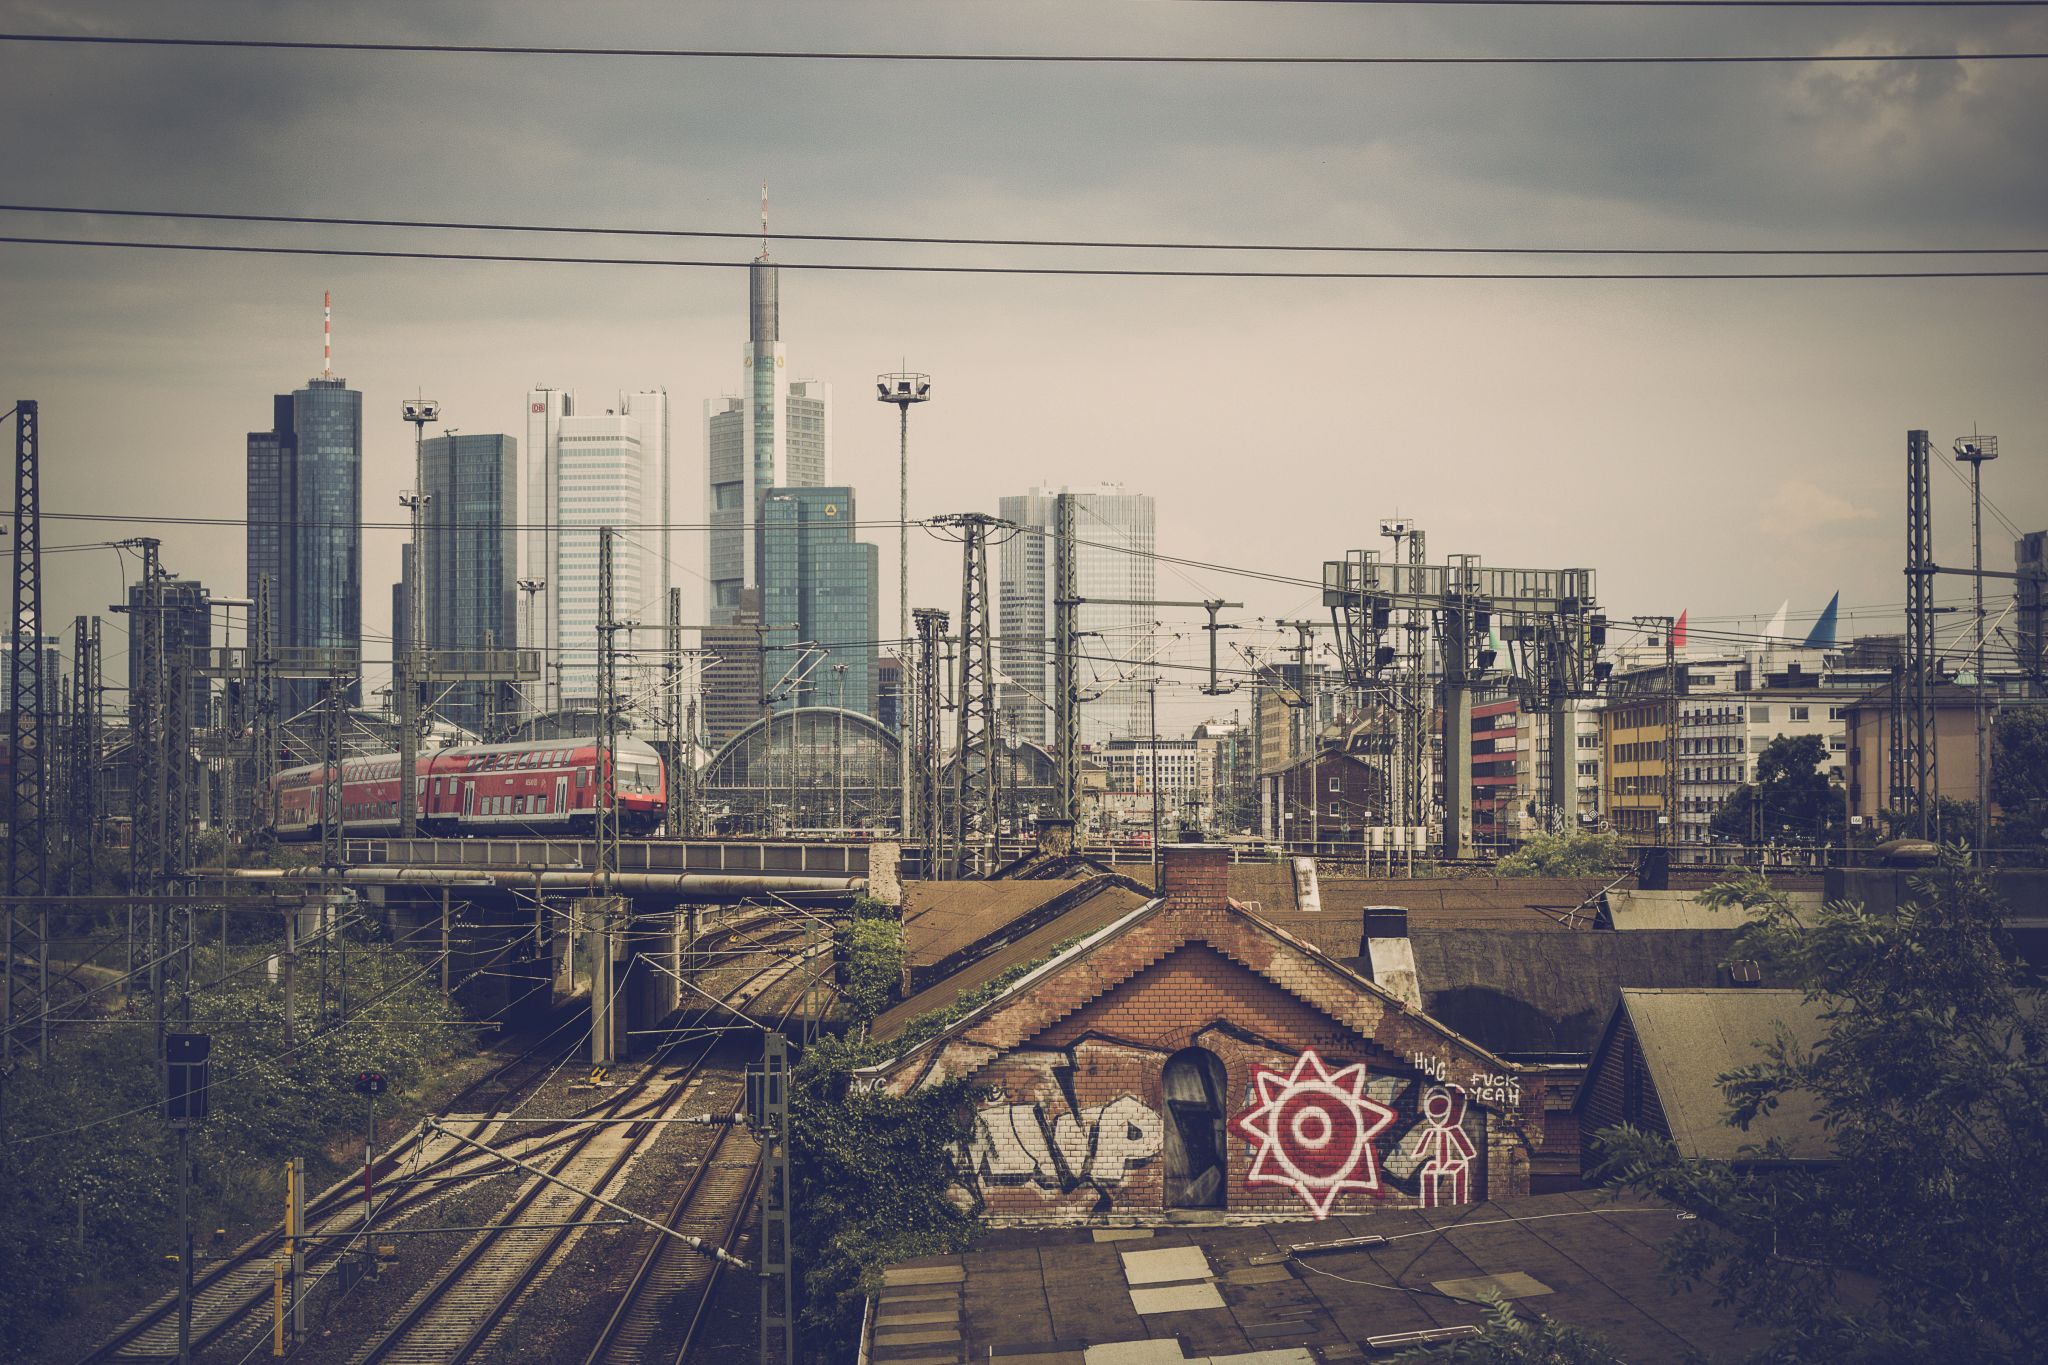 Frankfurt, main station from the backside, Germany